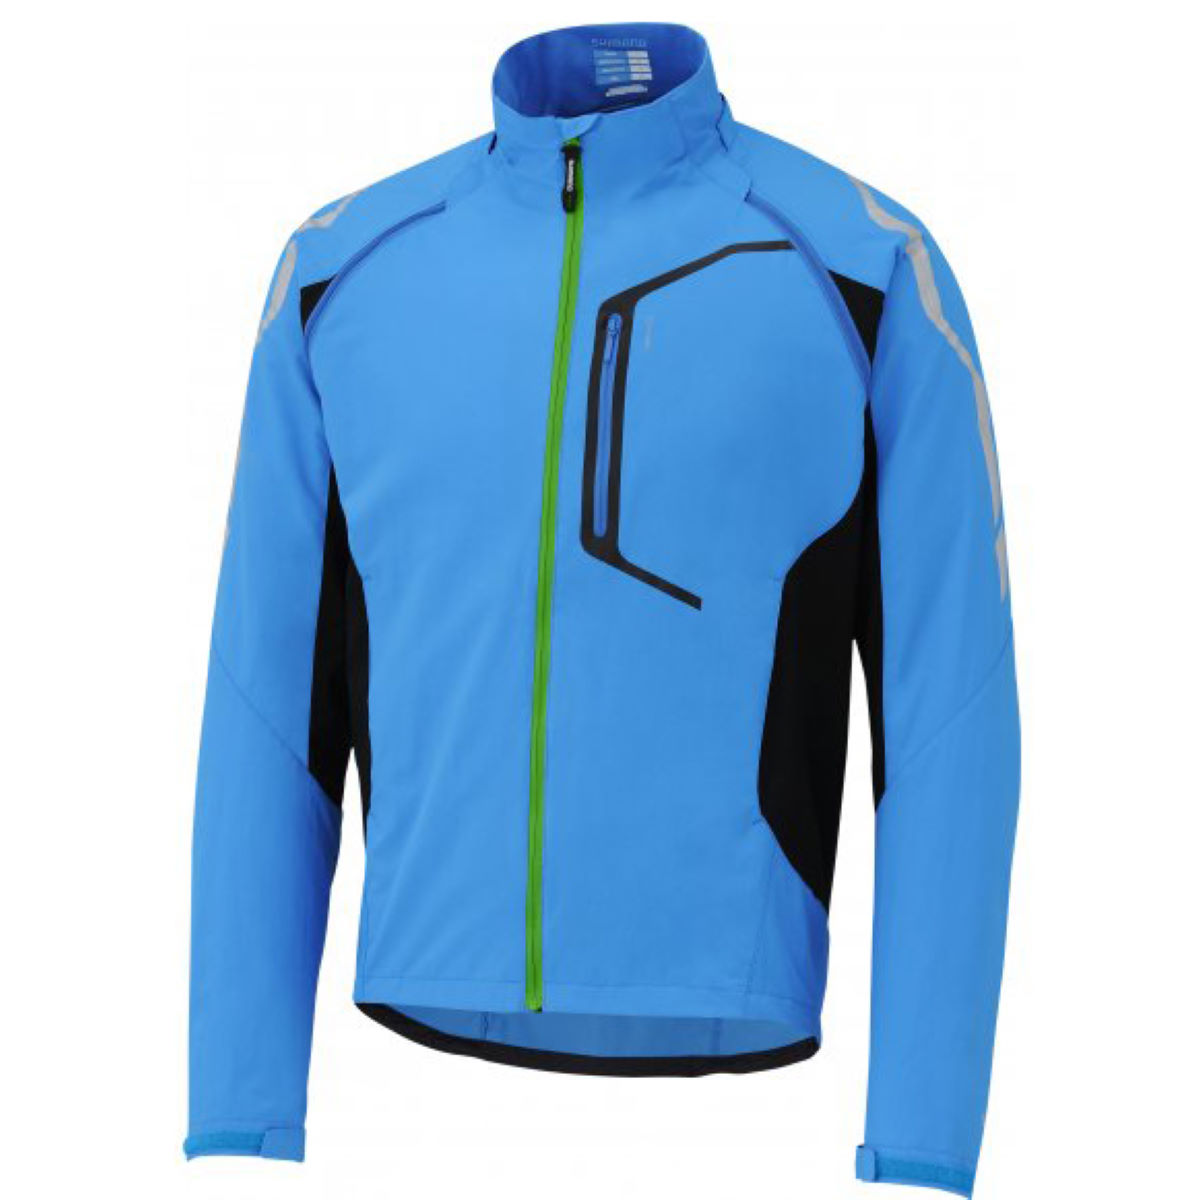 Veste Shimano Hybrid - Extra Large Lightening Blue Coupe-vents vélo